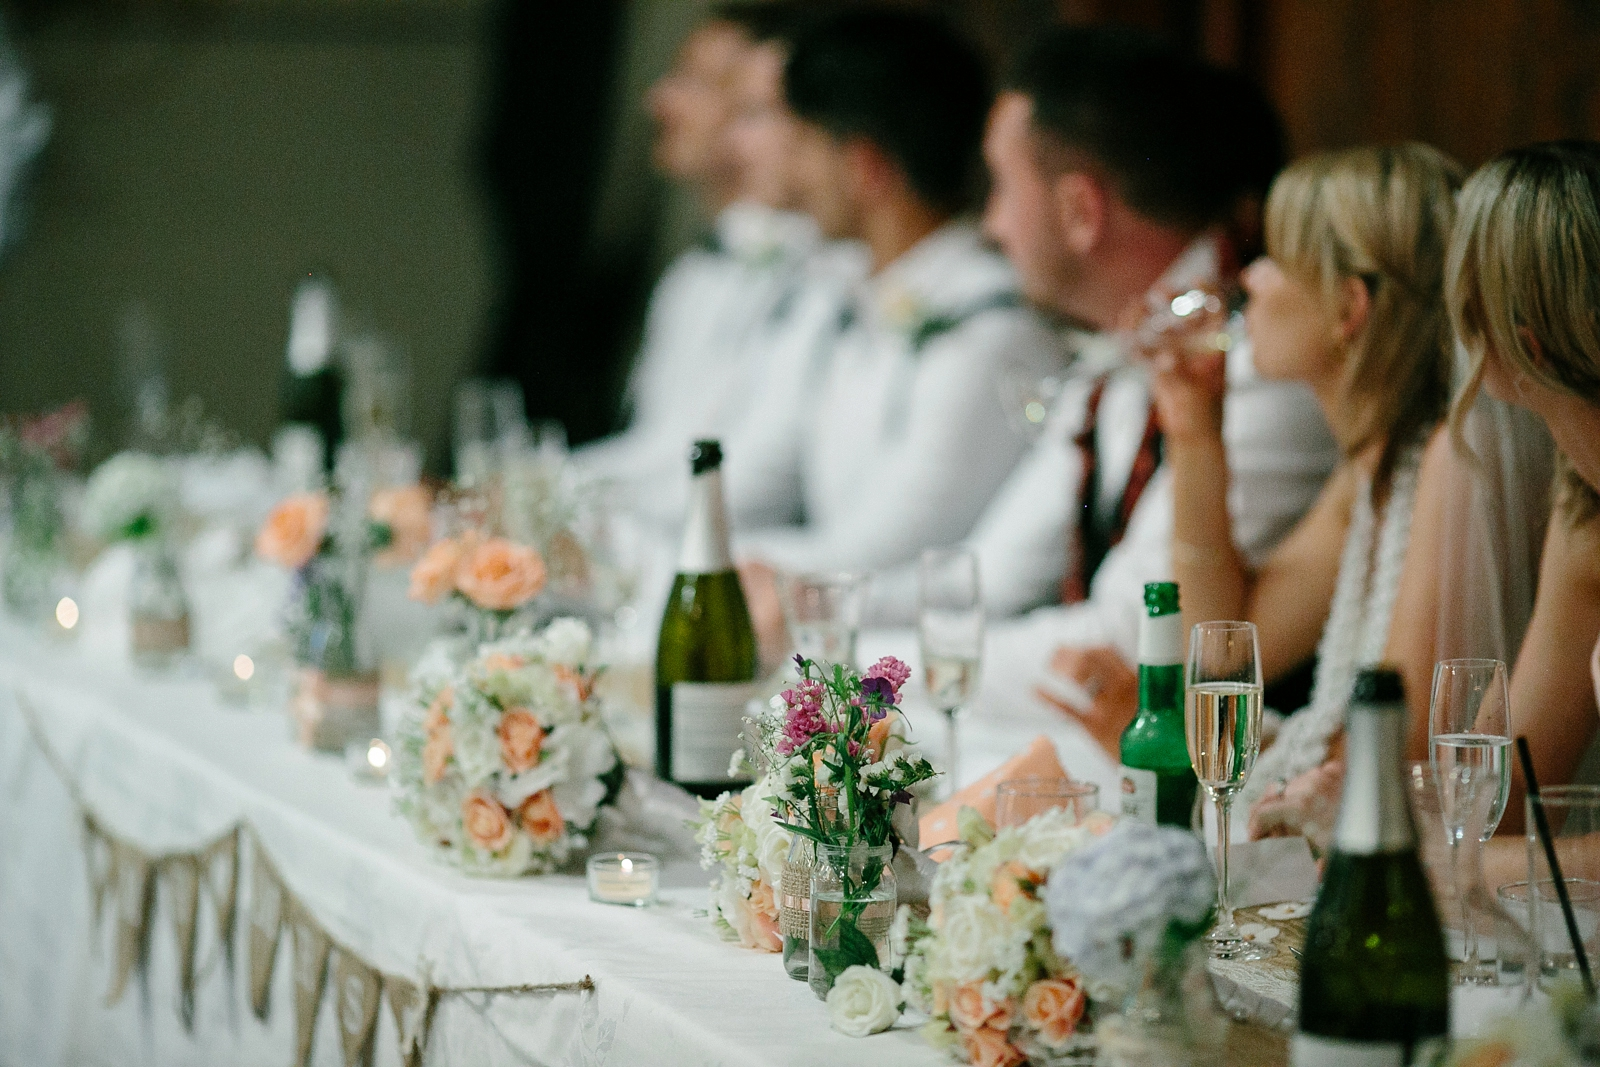 ConnorLaura_Auckland Wedding Photographer_Patty Lagera_0100.jpg